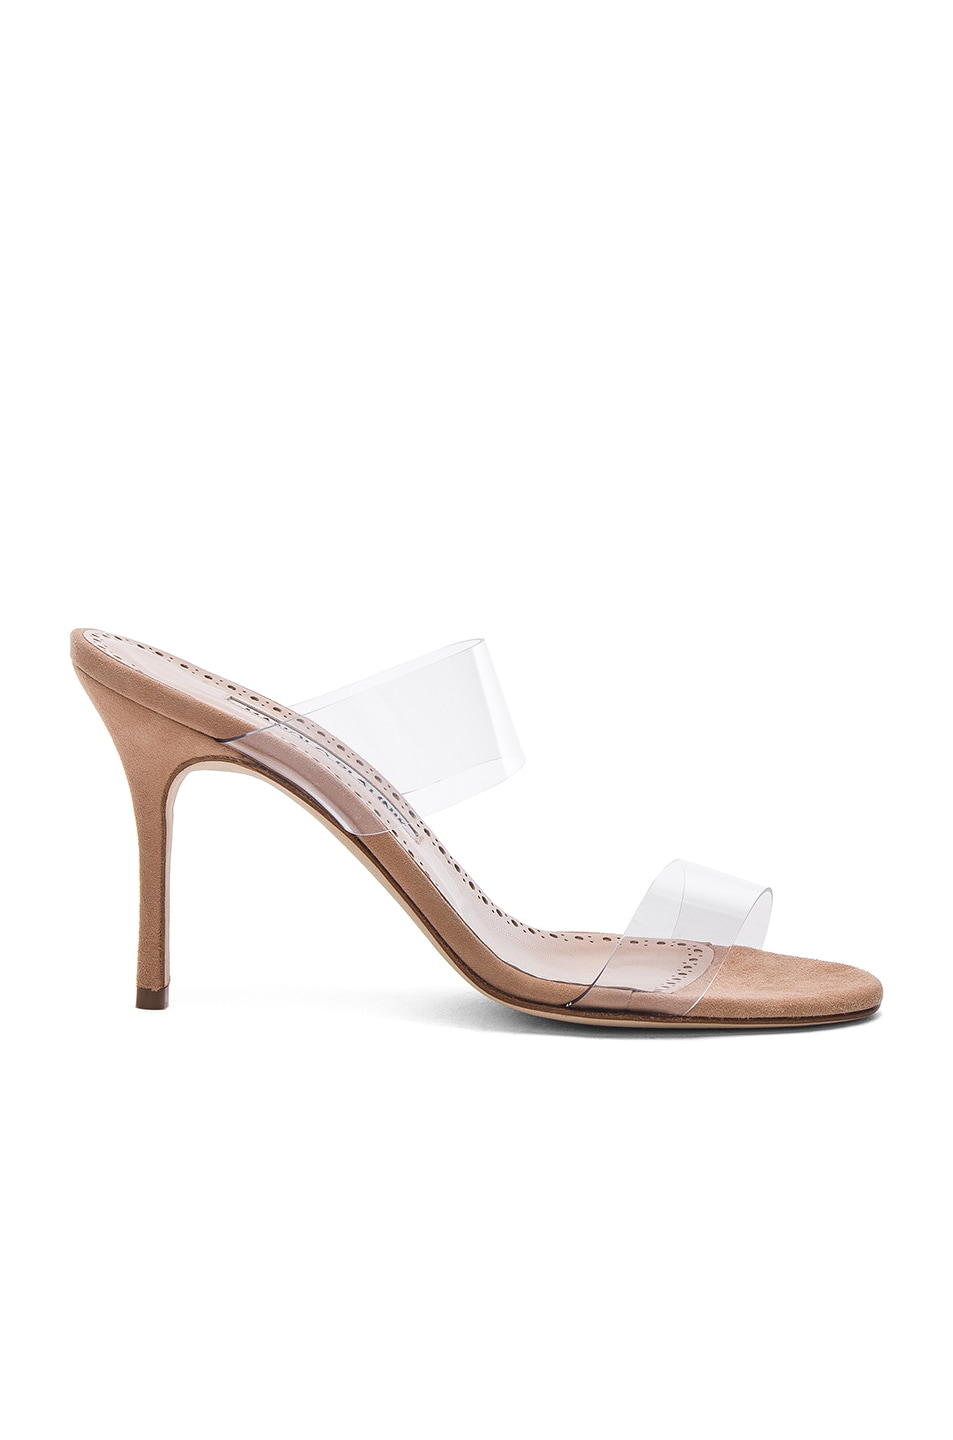 Image 1 of Manolo Blahnik PVC Scolto Sandals in Nude Suede